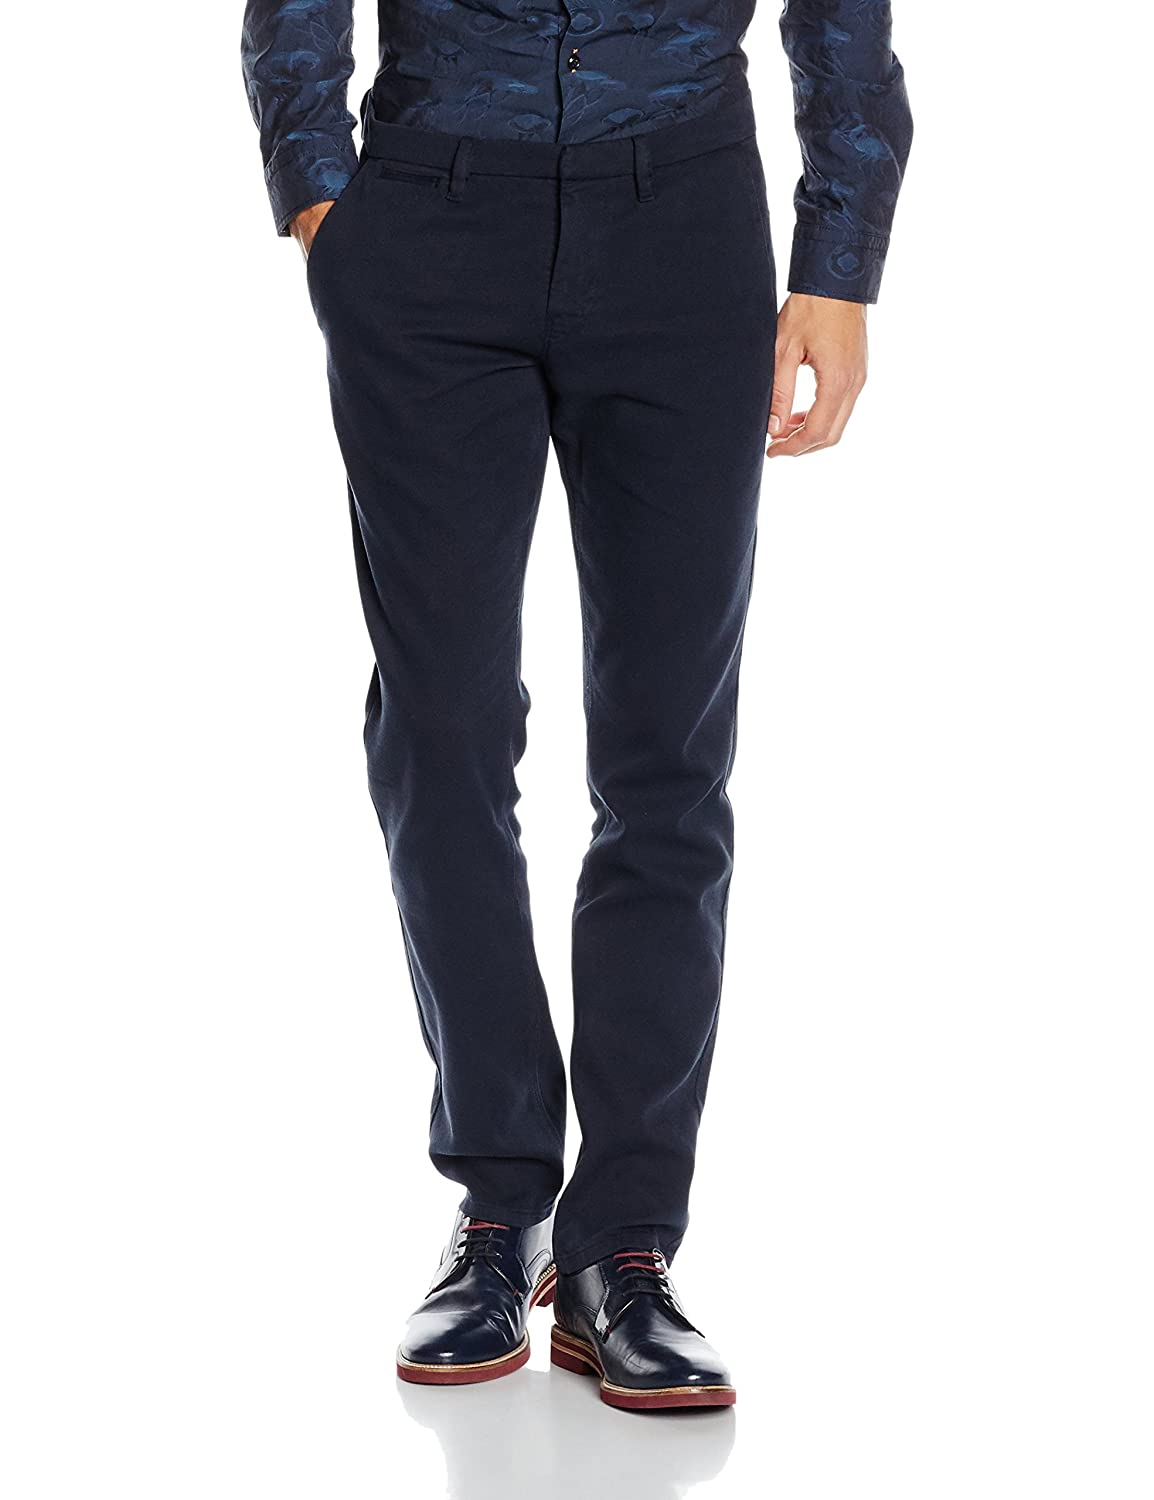 BOSS Orange Herren Hose Schino-slim3-D